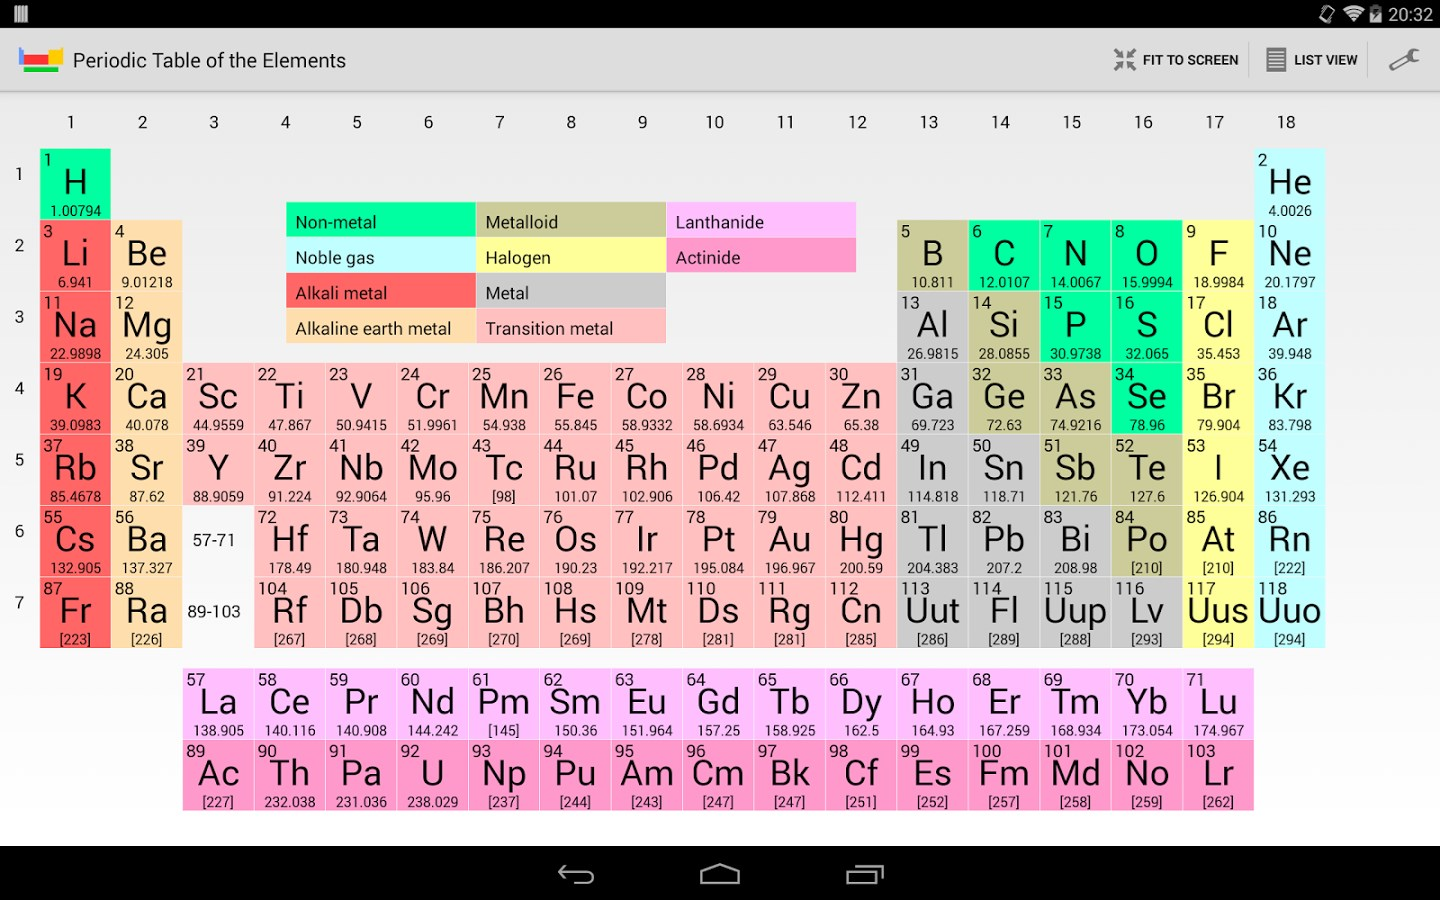 Tavola Periodica Na Periodic Table Of Elements Download